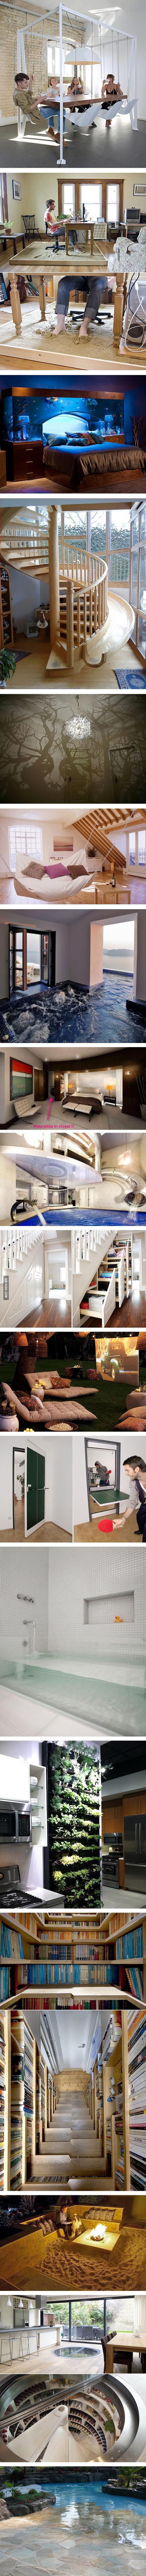 18 Awesome House Ideas!